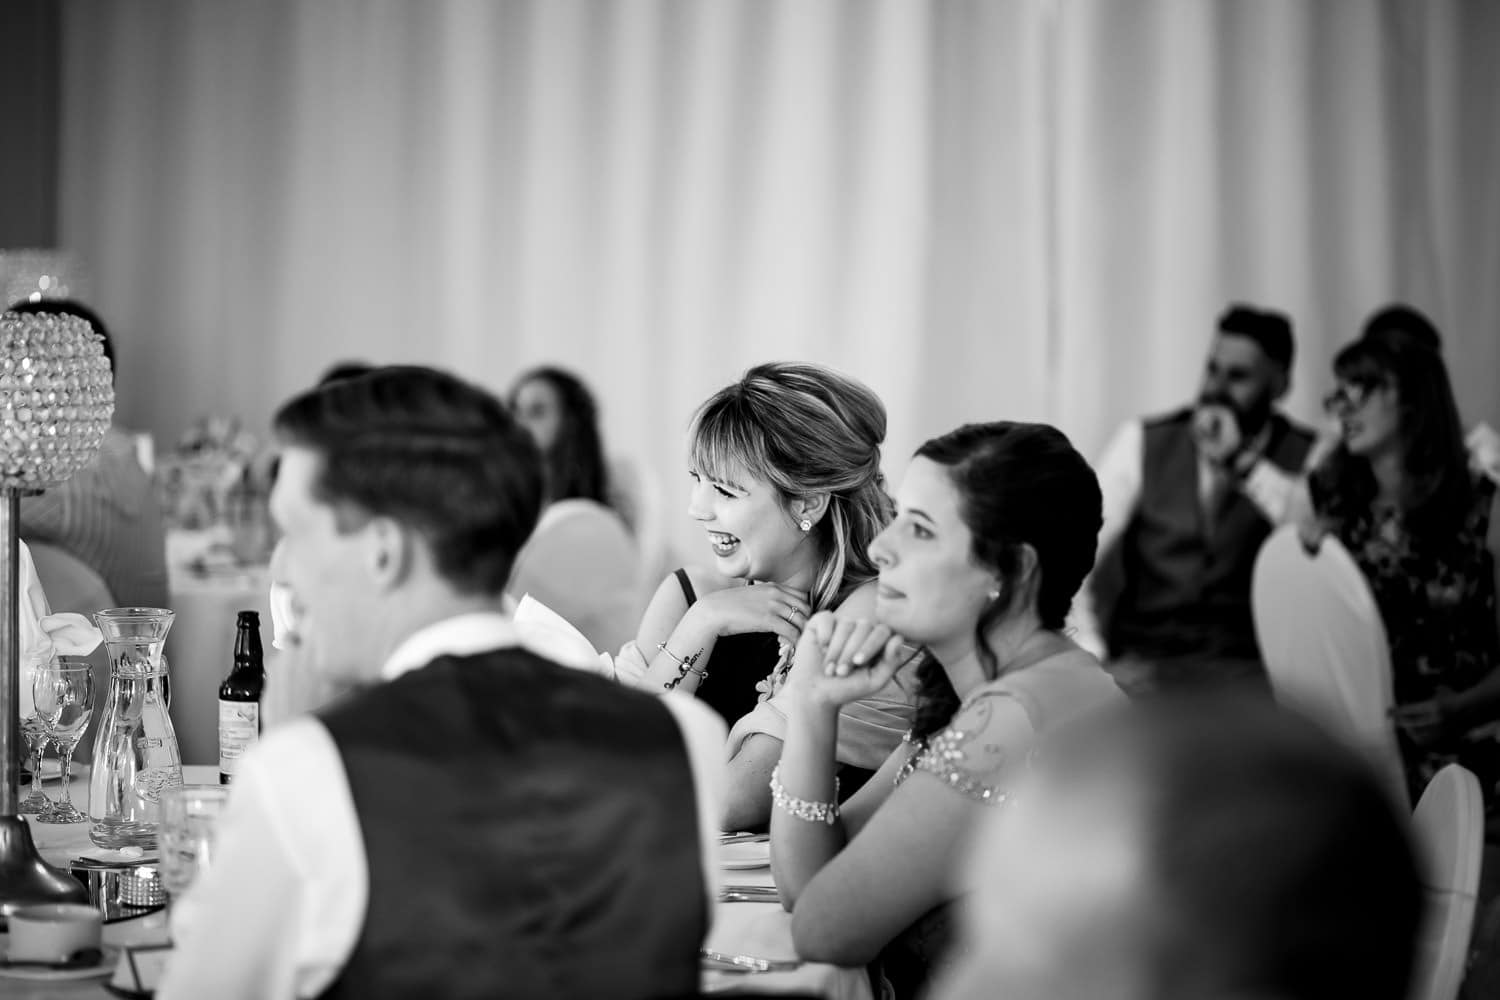 Warwick House Wedding Photography captures guests smiling during speehes